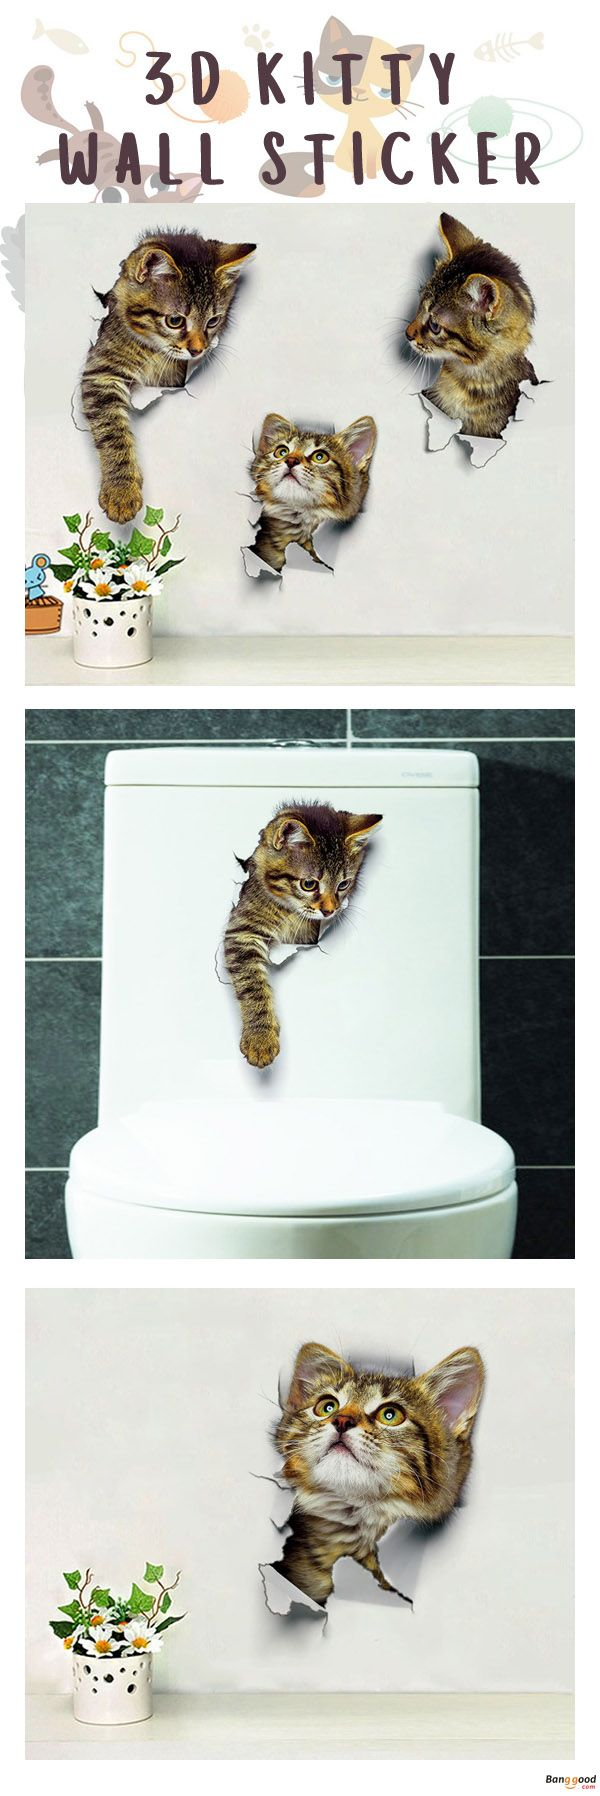 3d Cute Cat Wall Stickers Toliet Stickers Decorations Creative Animal Wall Stickers Decorate Your Home Like A Makeup Artist Home Decor From Home And Garden On Cat Wall Sticker Decor